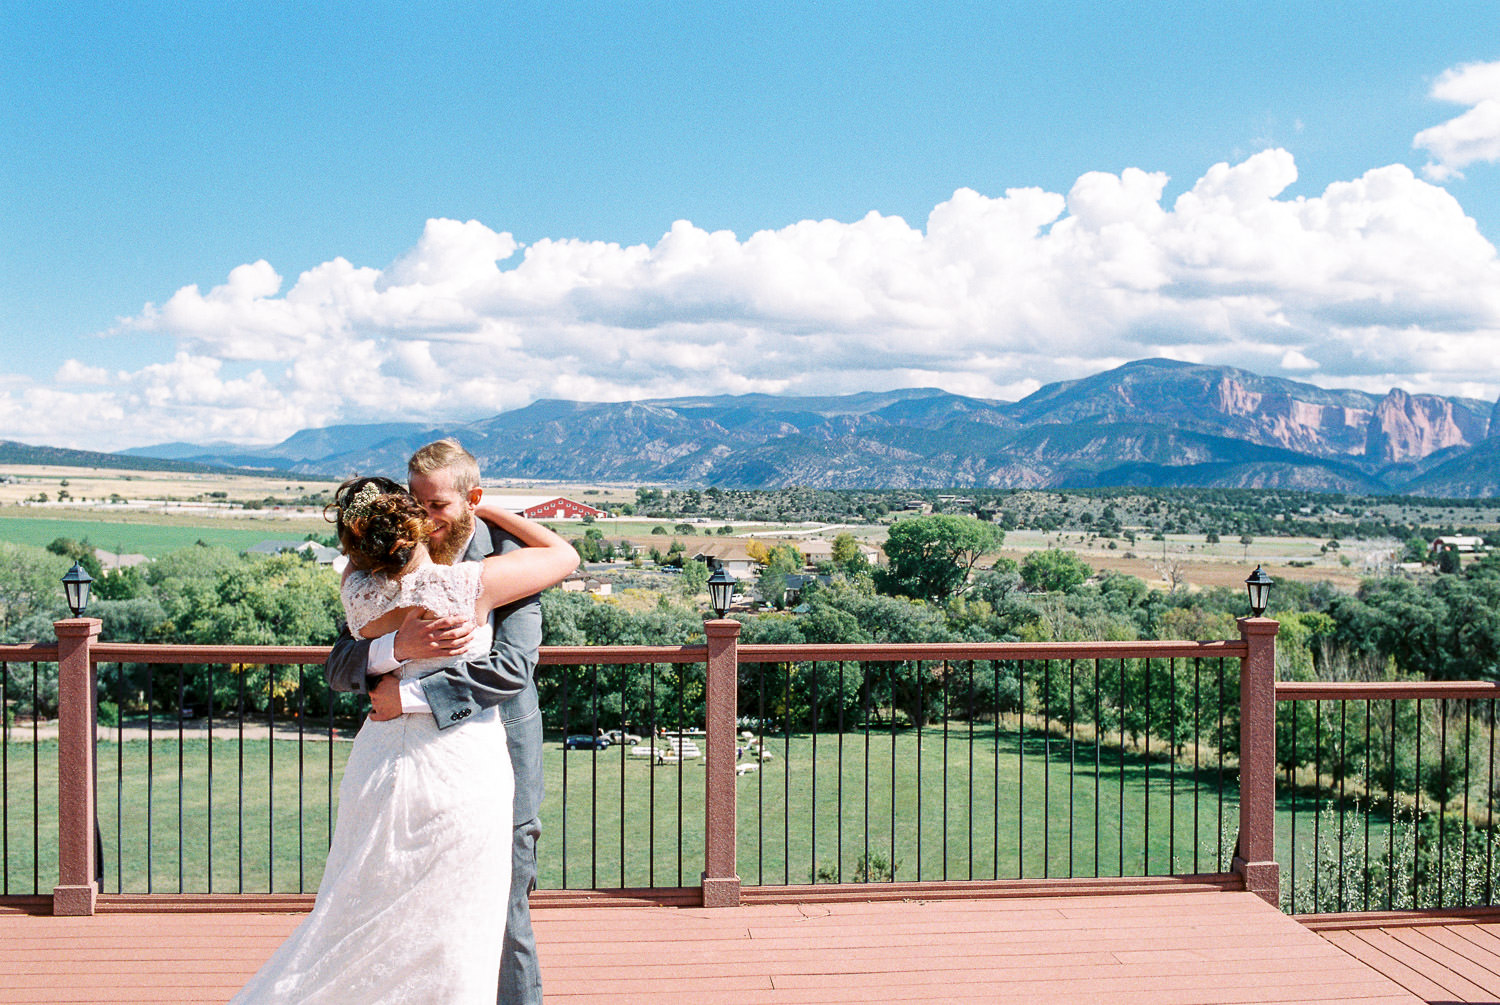 Kolob terrace wedding photography utah